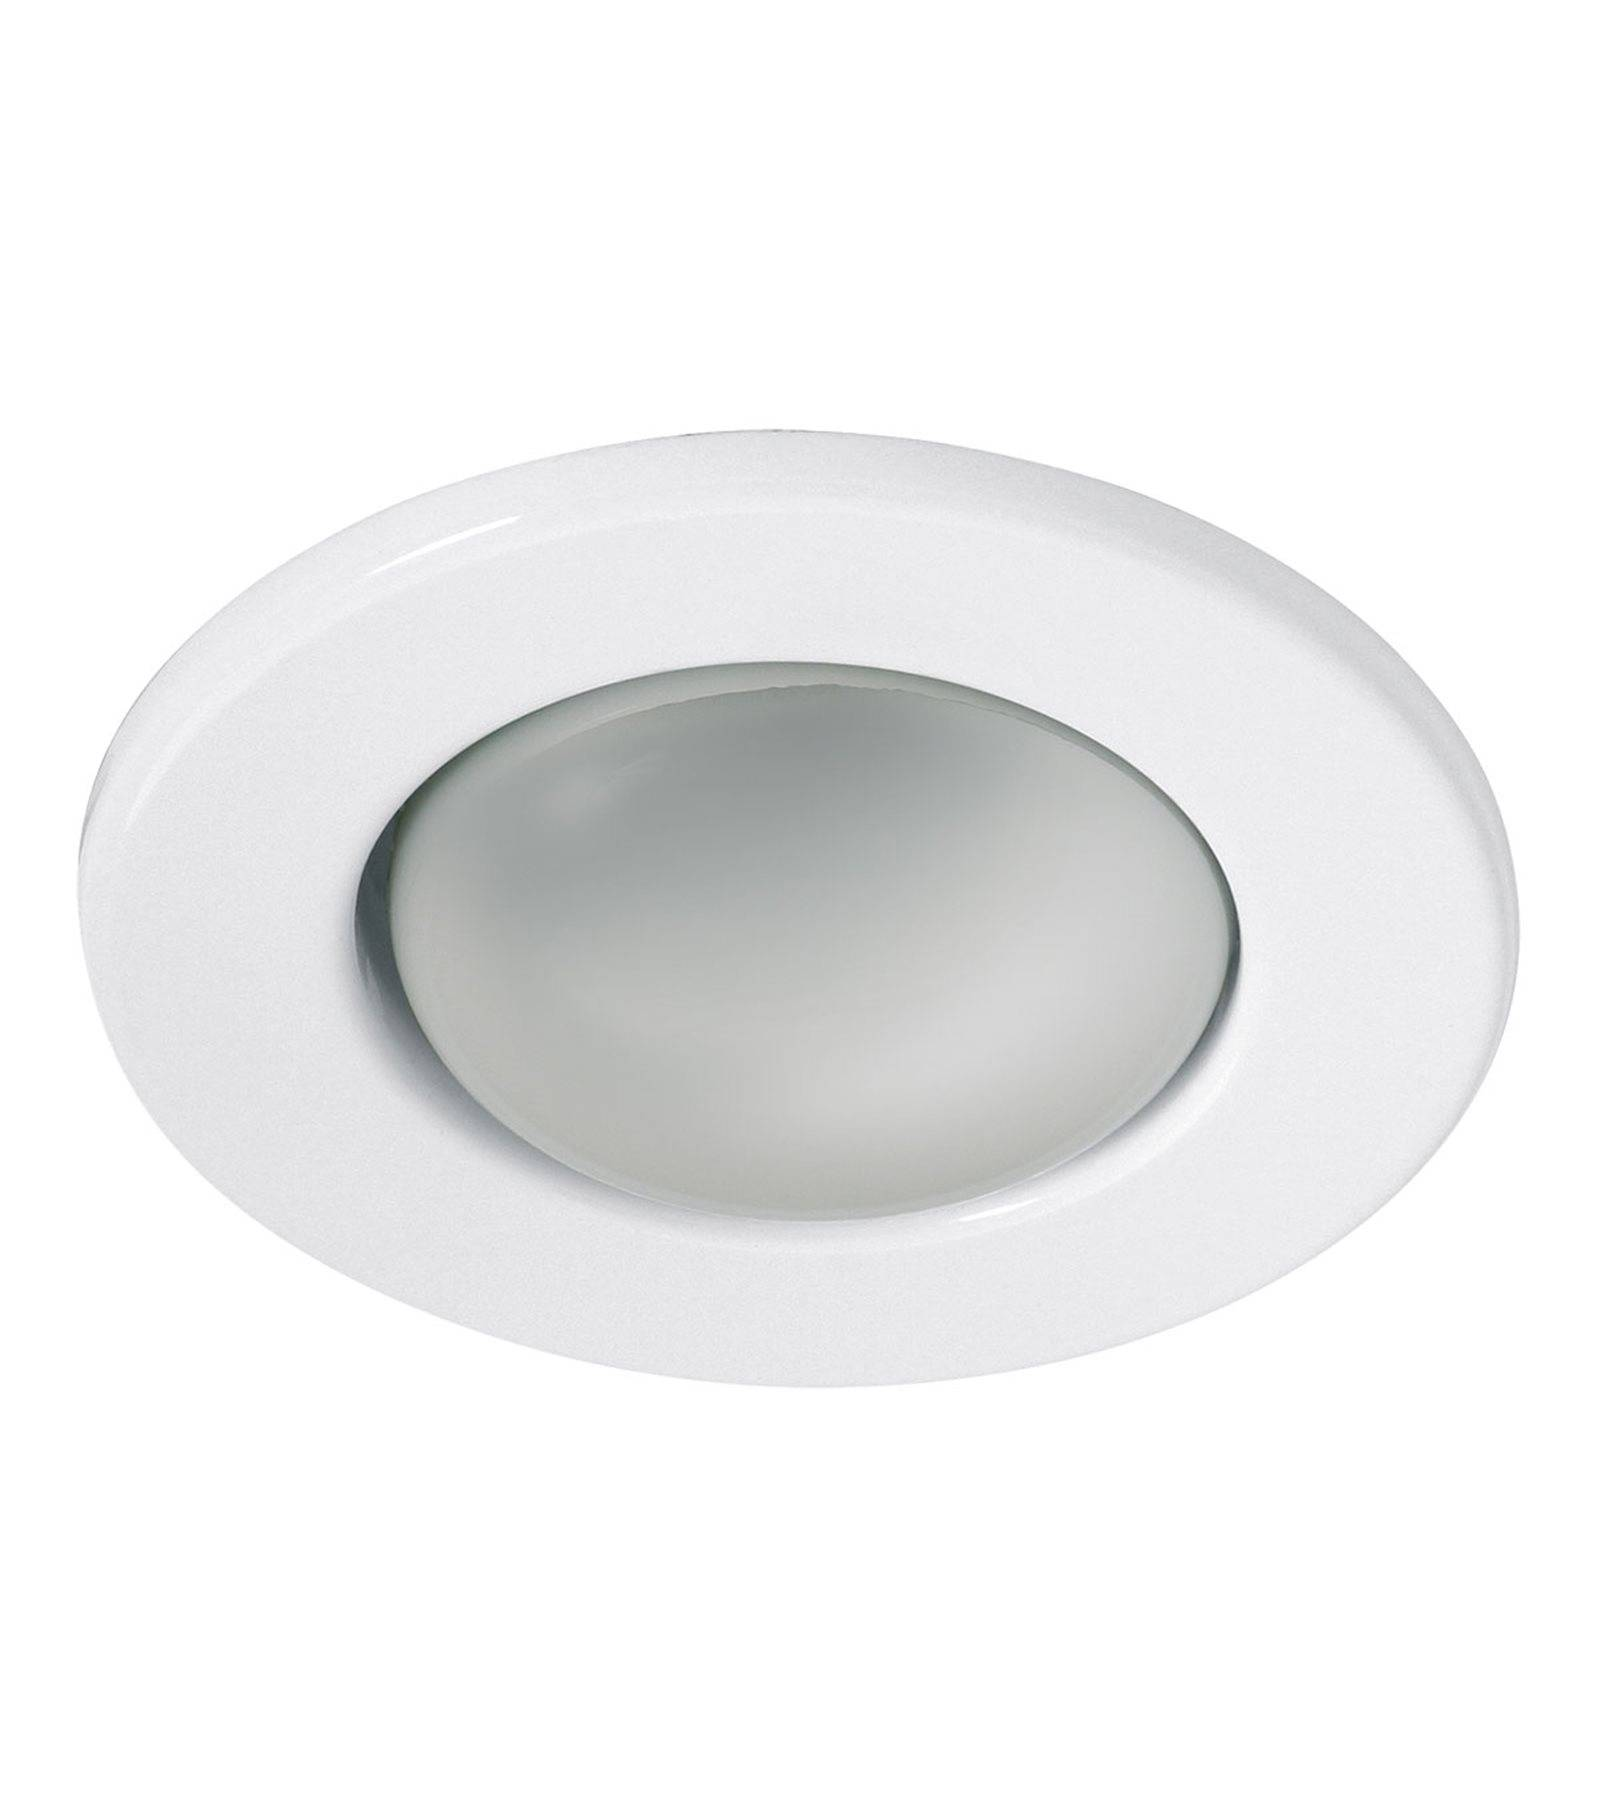 Spot encastrable rago blanc rond e14 ip20 kanlux for Spot led interieur encastrable